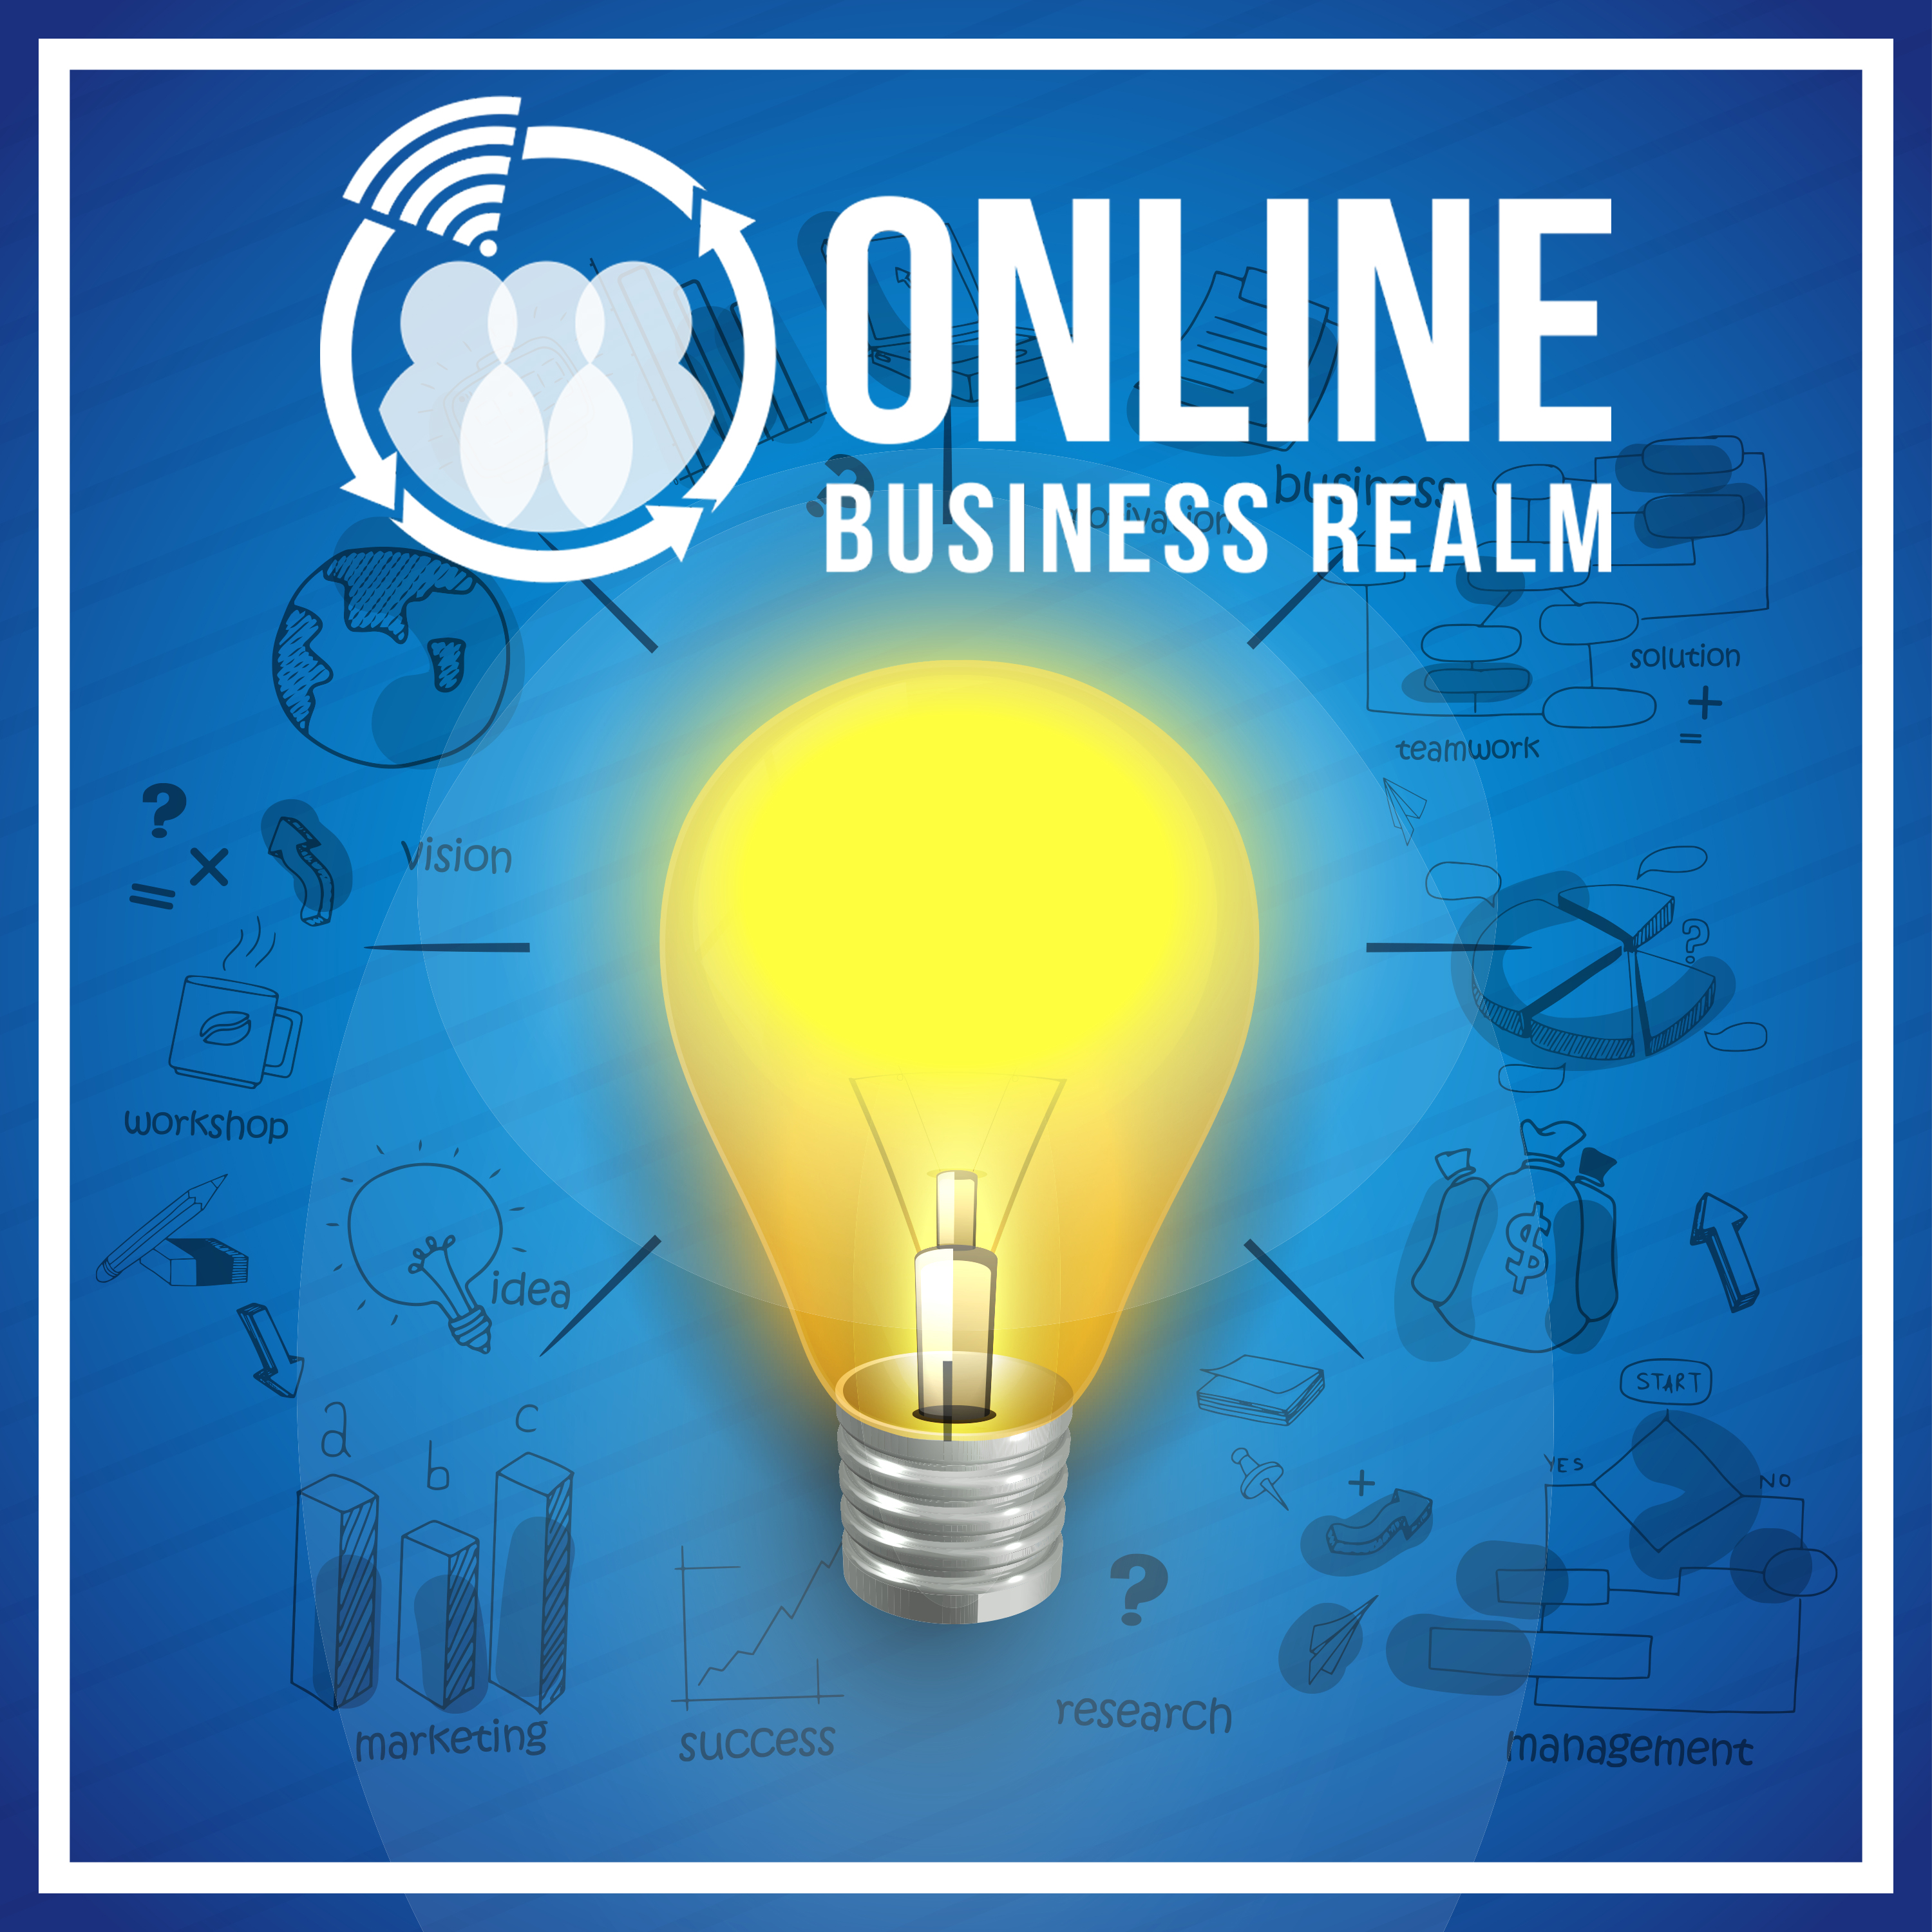 Welcome to the Online Business Realm - Online Business Realm